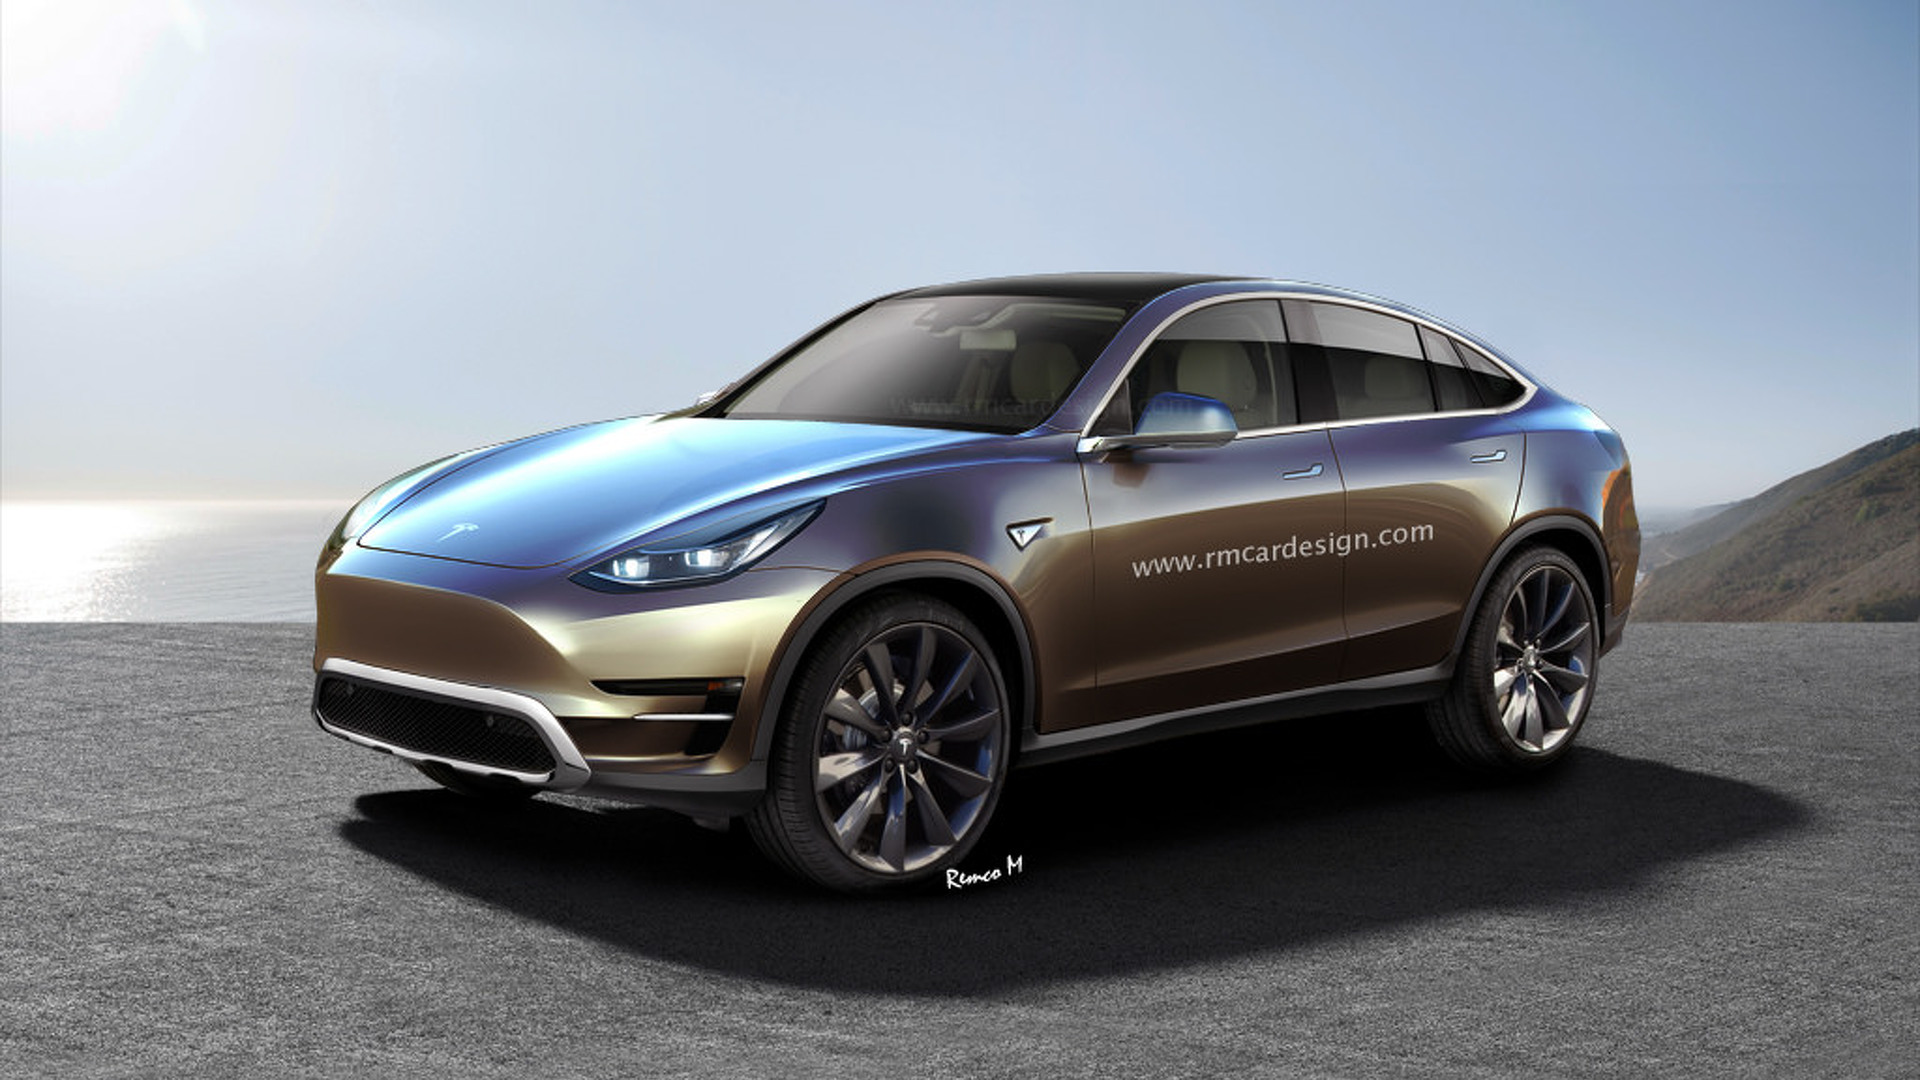 The Tesla Model Y is undoubtedly one of the most hotly anticipated vehicles around yet it could also provide the foundation for yet another Tesla release